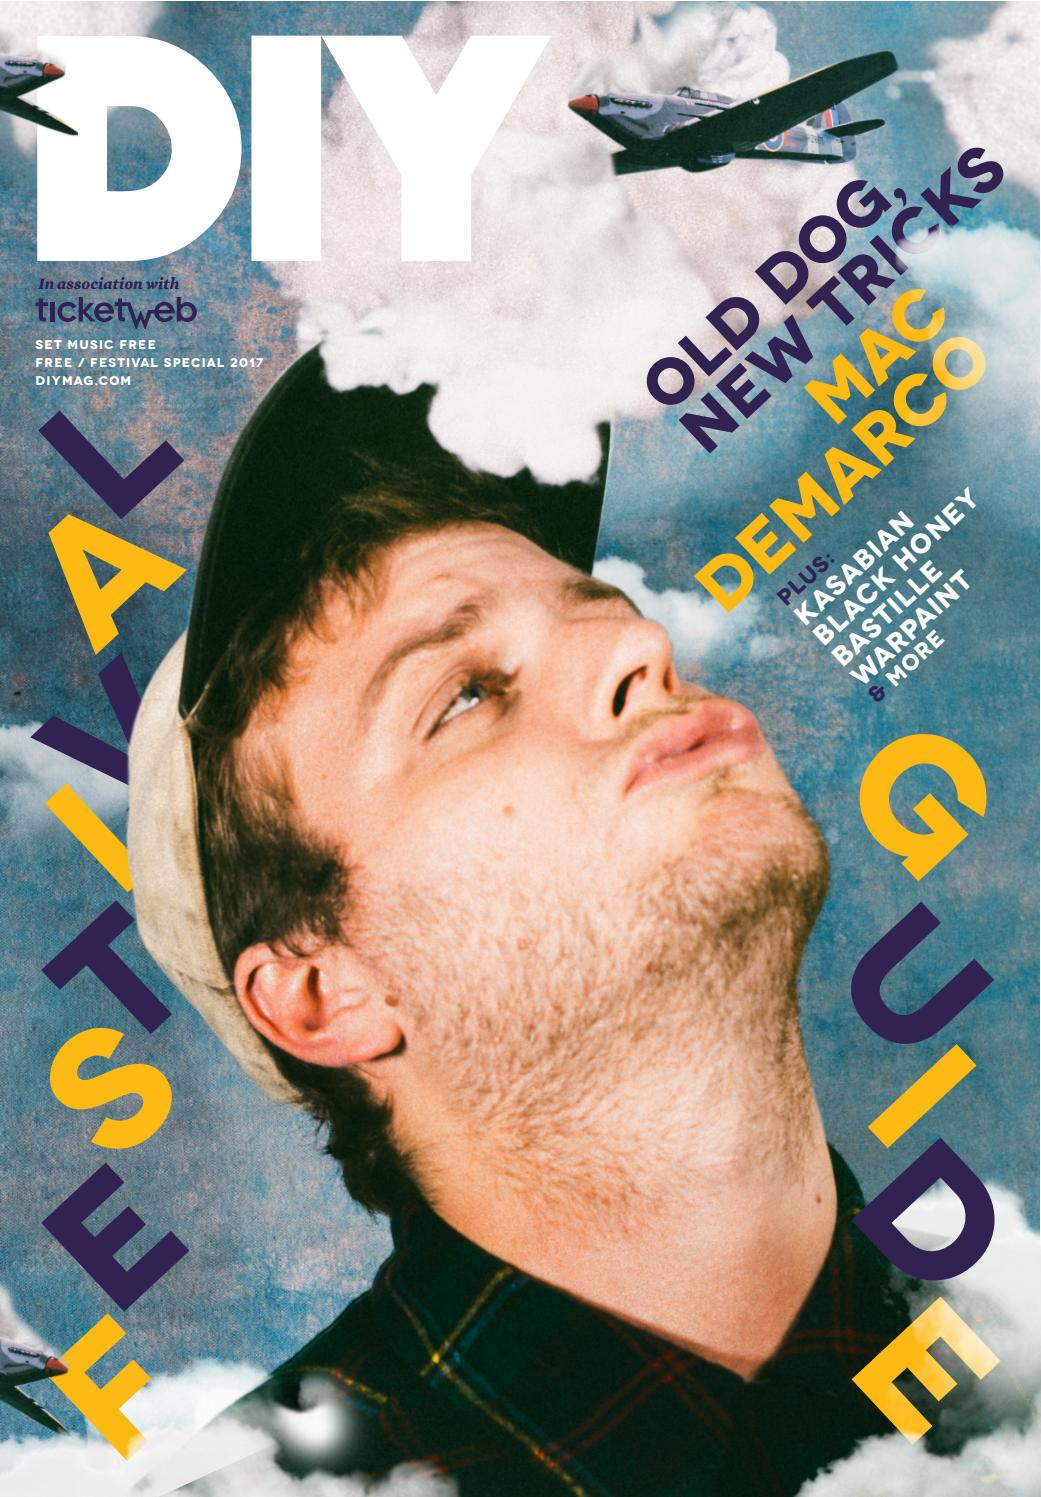 Mac DeMarco - DIY Festival Guide cover feature - cover.jpg